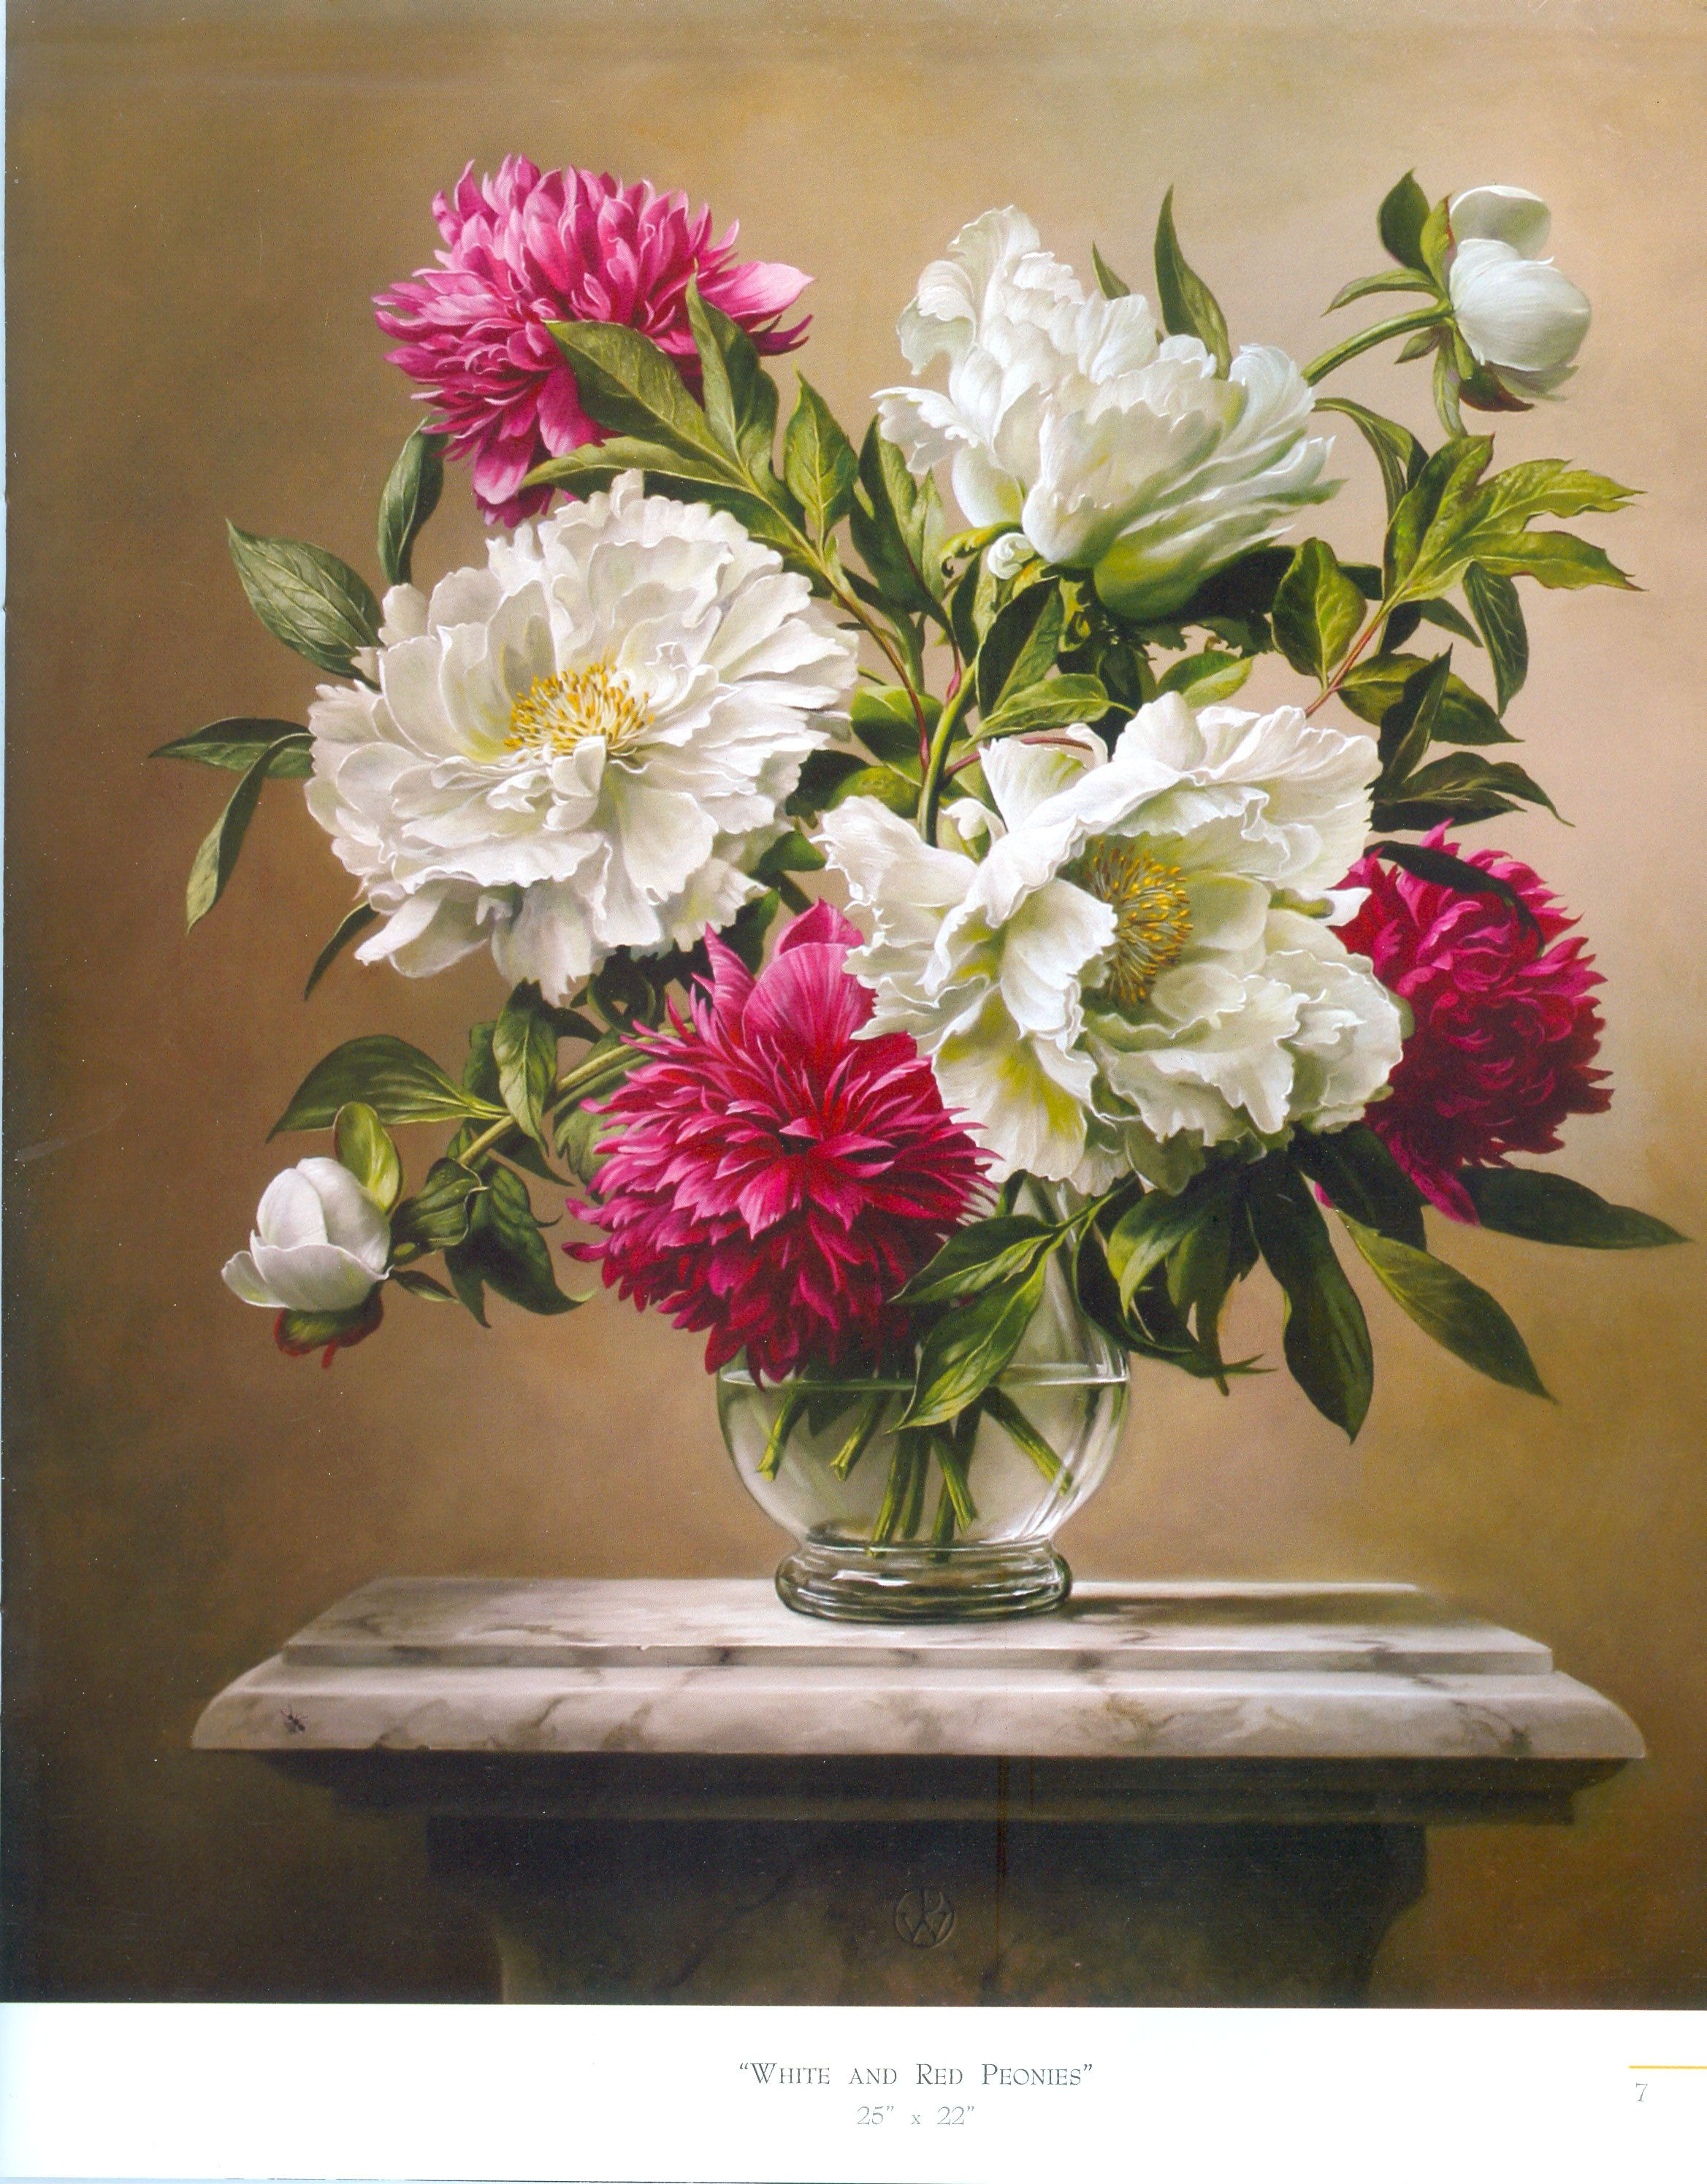 White and Red Peonies a still life